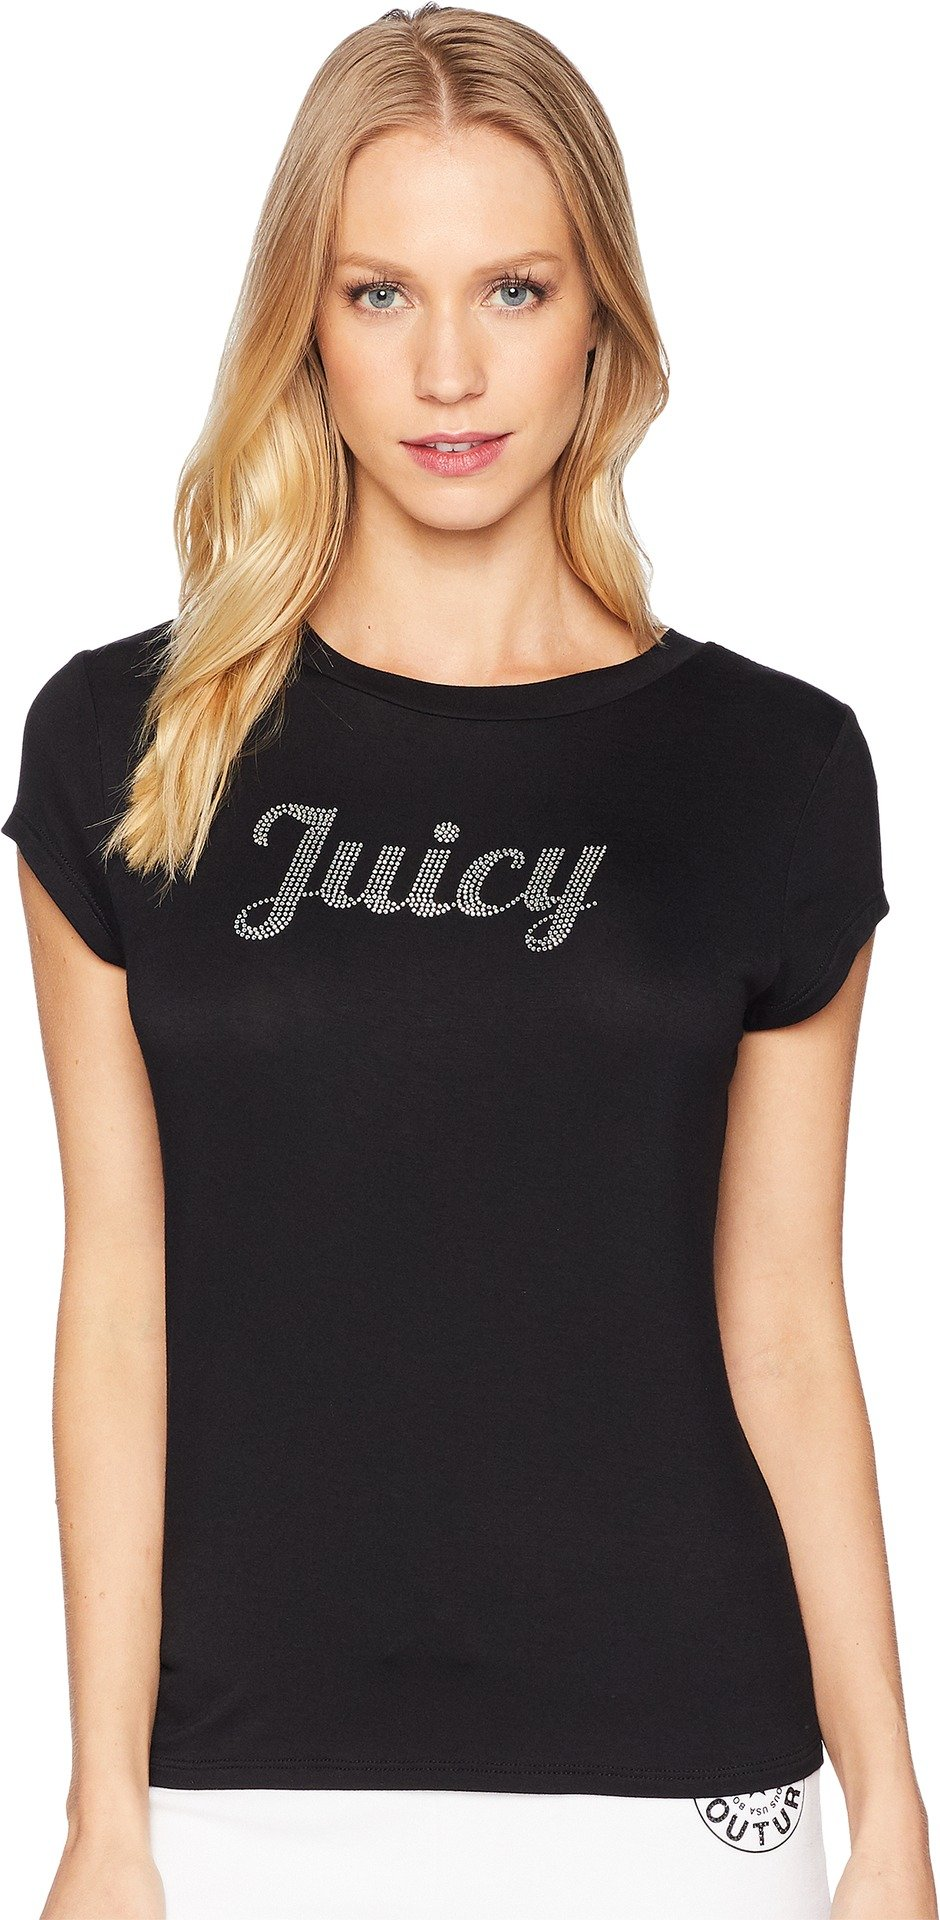 Juicy Couture Women's Juicy Short Sleeve Tee Pitch Black Medium